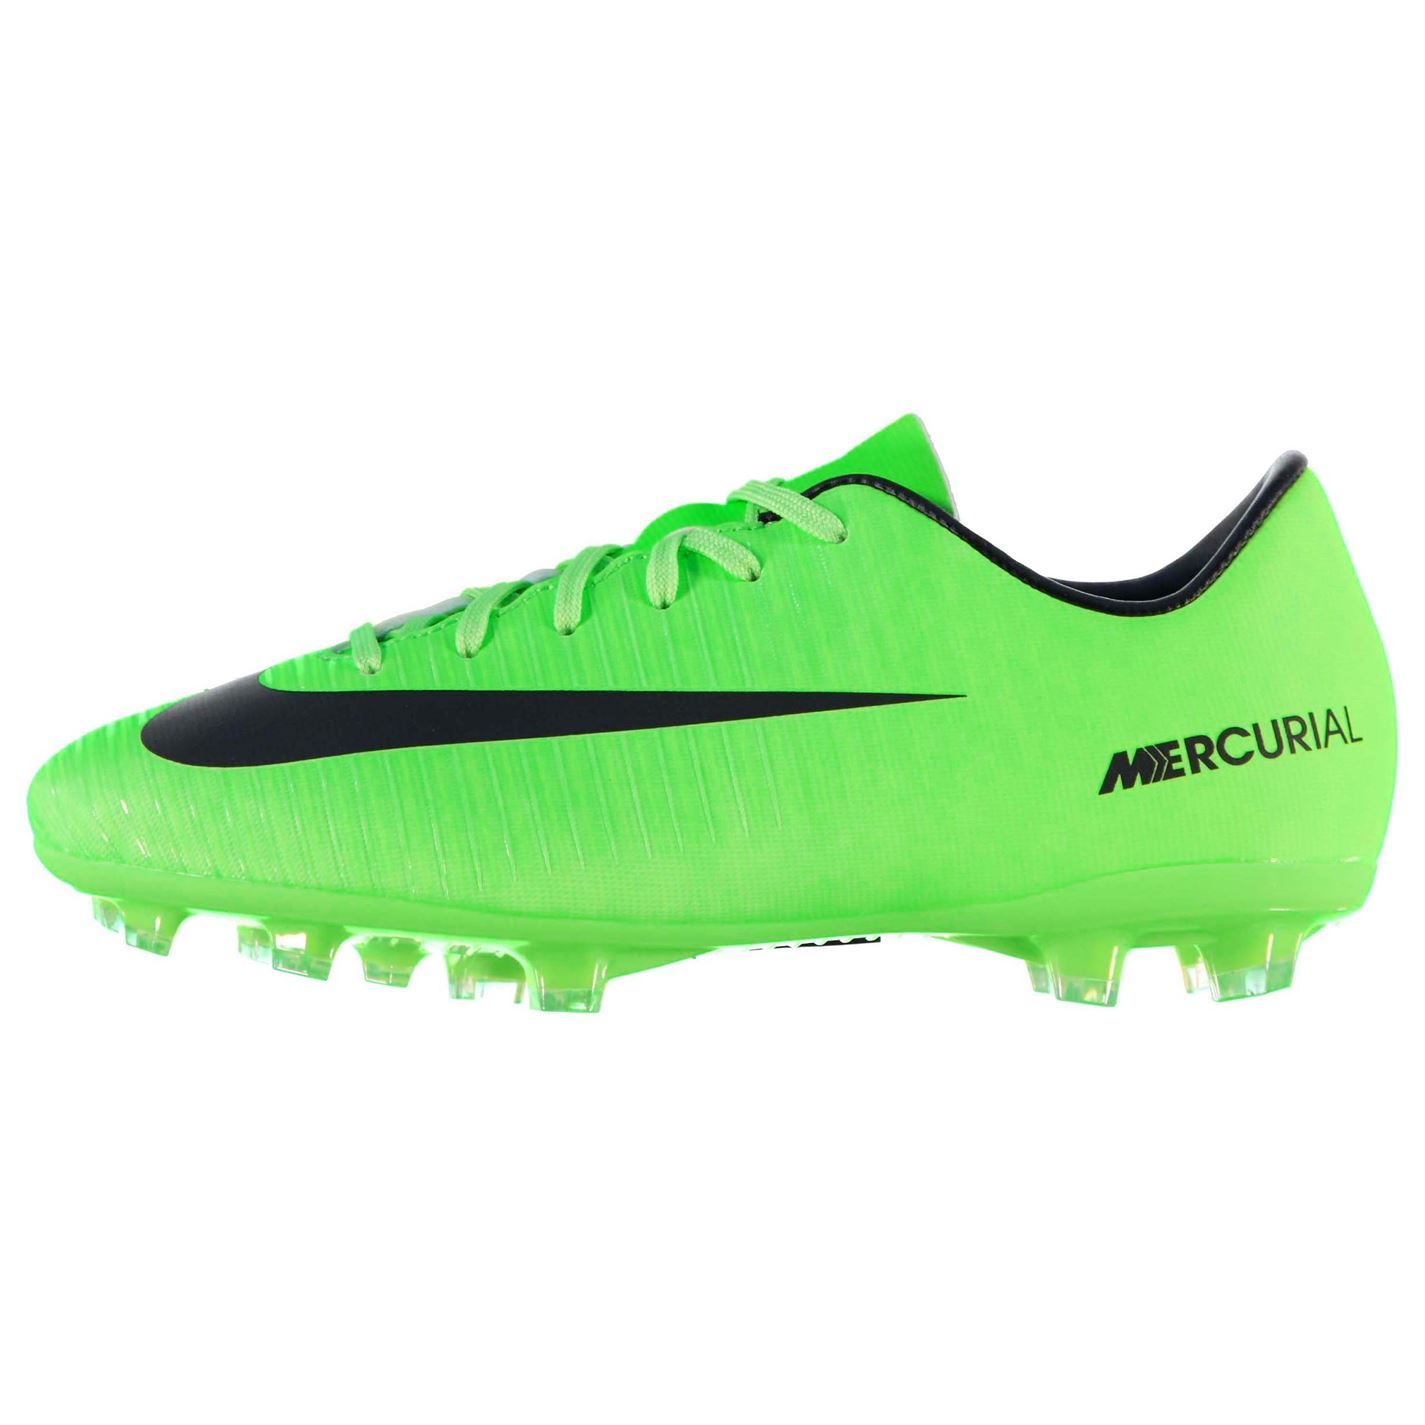 e27a7dfc0ae ... Nike Mercurial Vapor Firm Ground Football Boots Juniors Green Black  Soccer Shoes ...